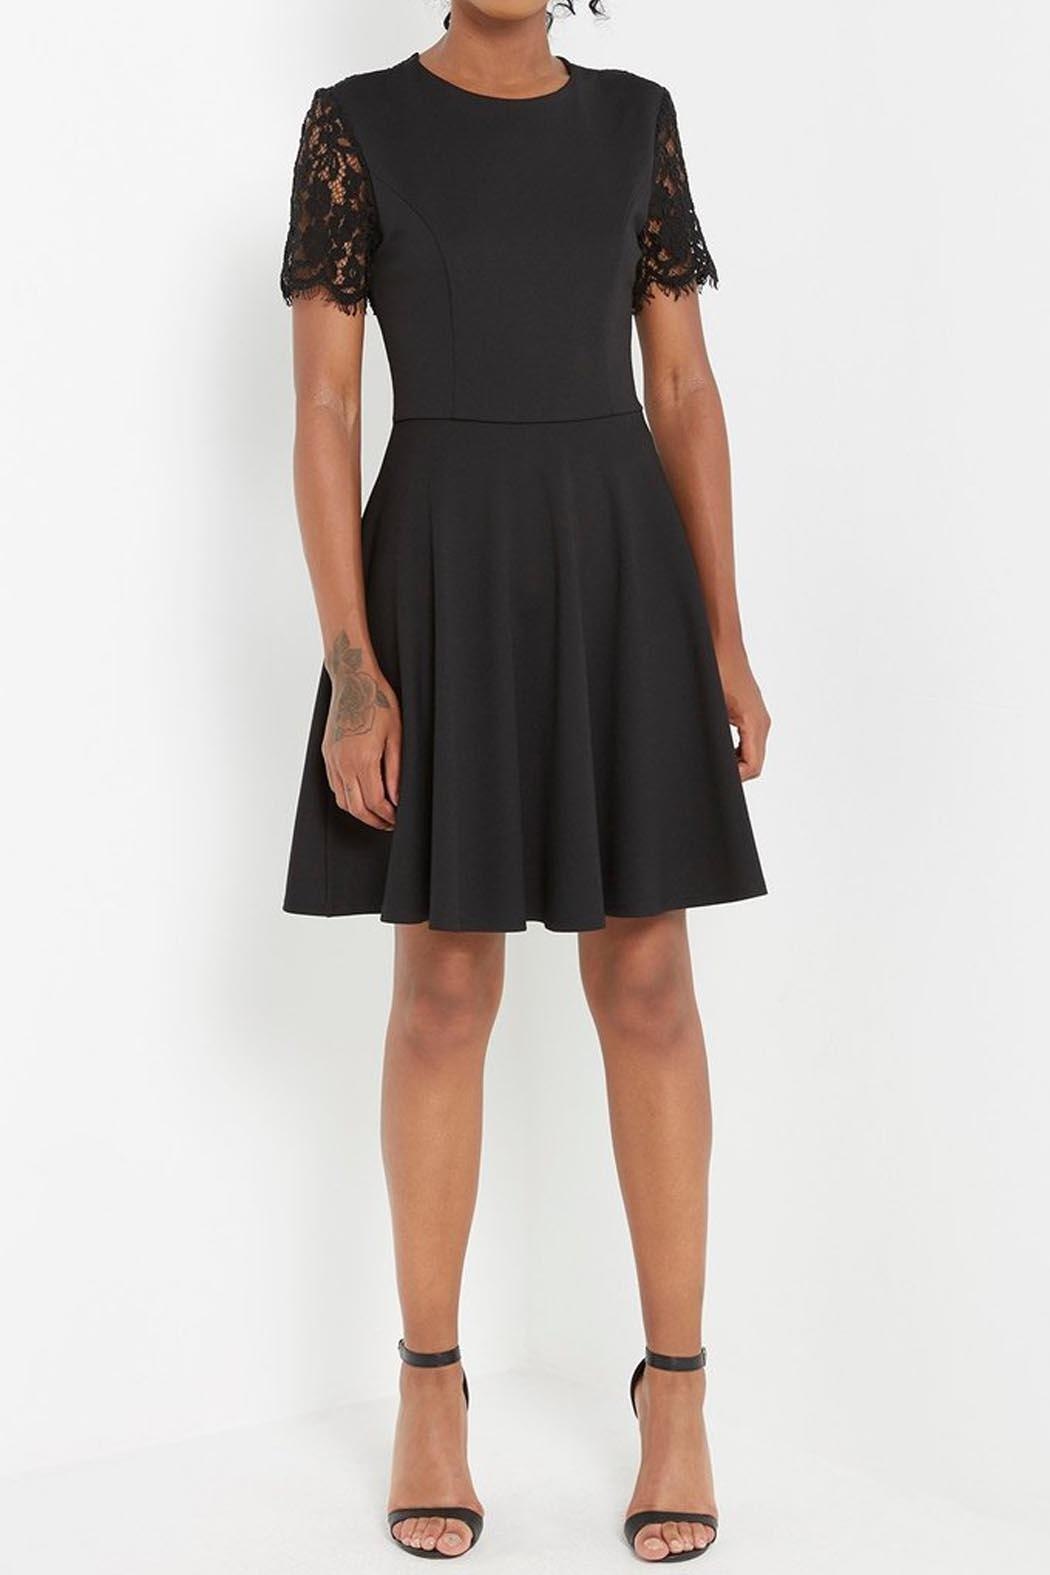 Soprano Black Lace Dress - Front Cropped Image